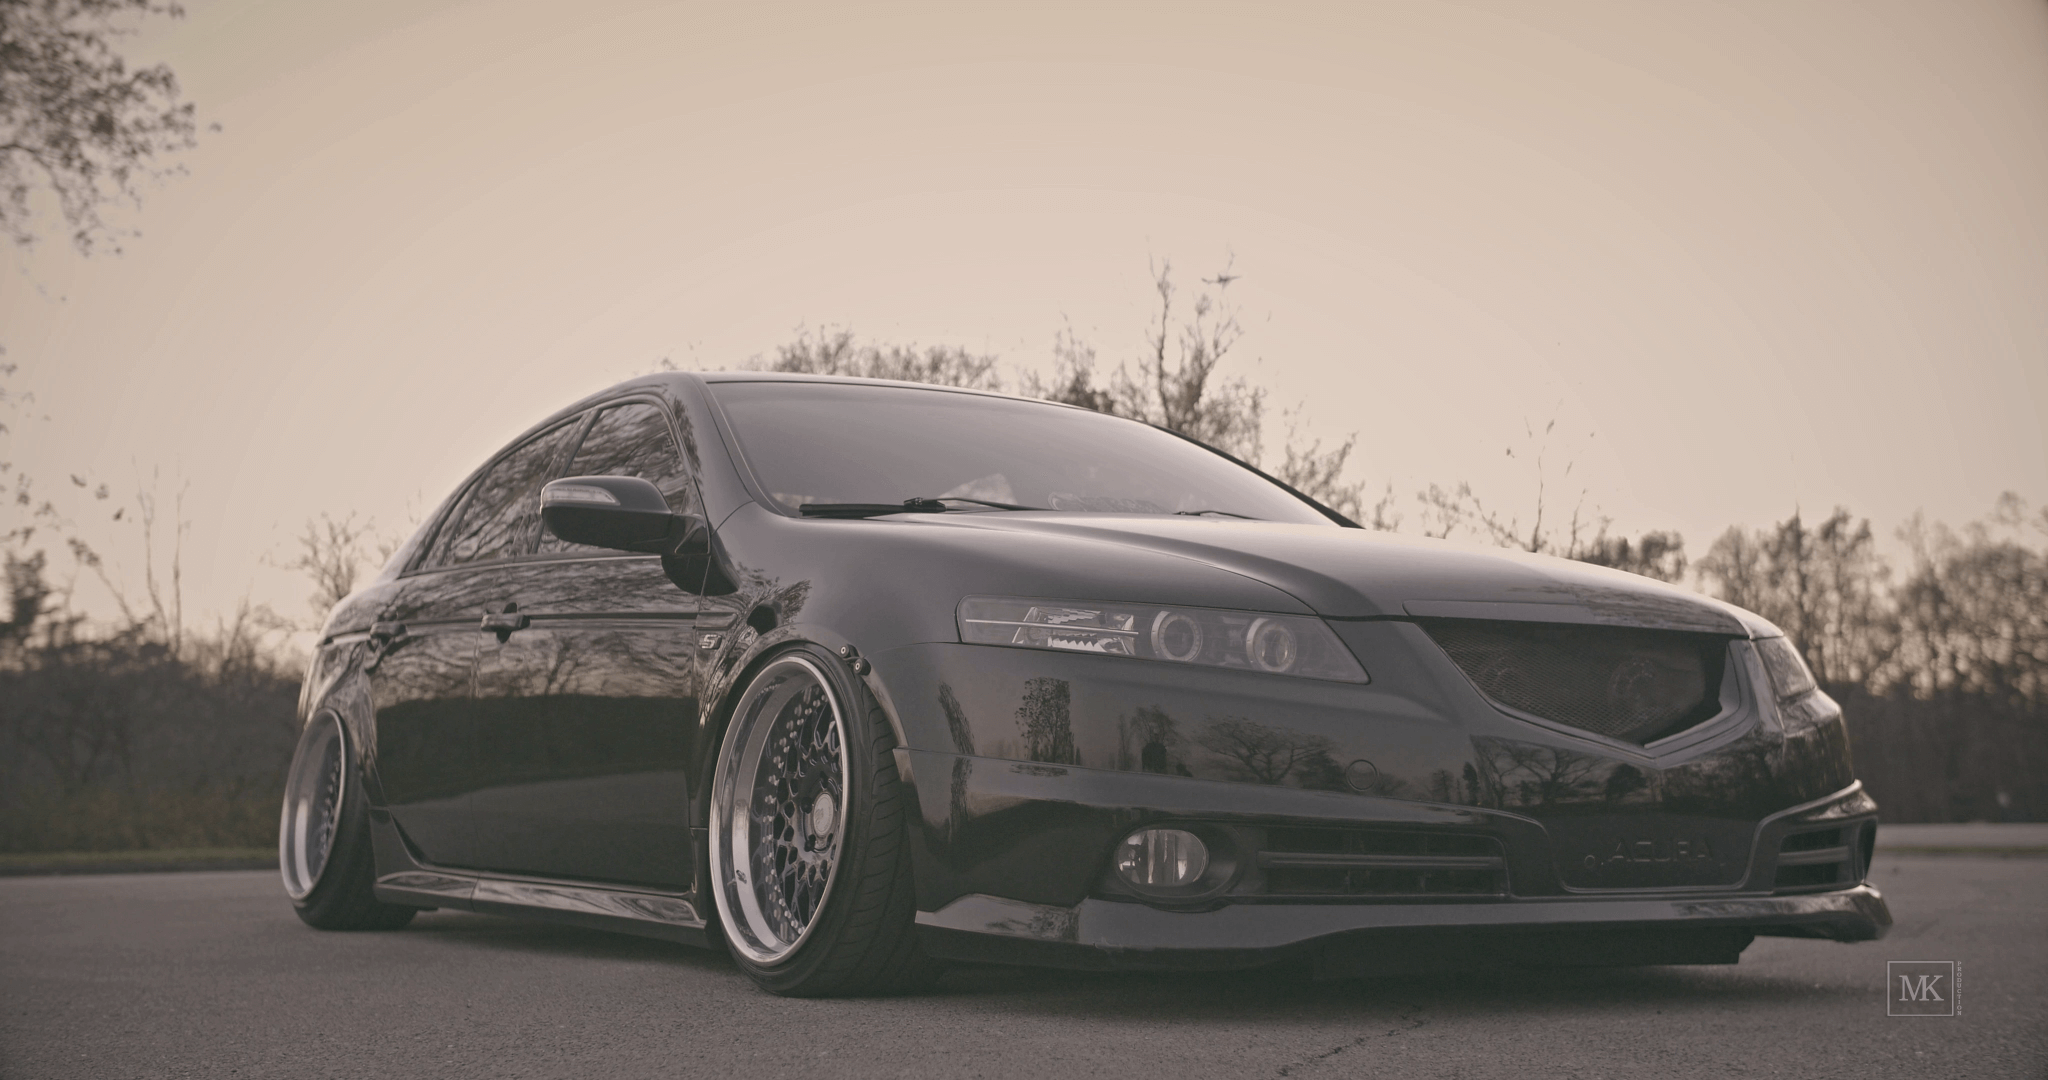 Mark's Supercharged Acura TL Type S